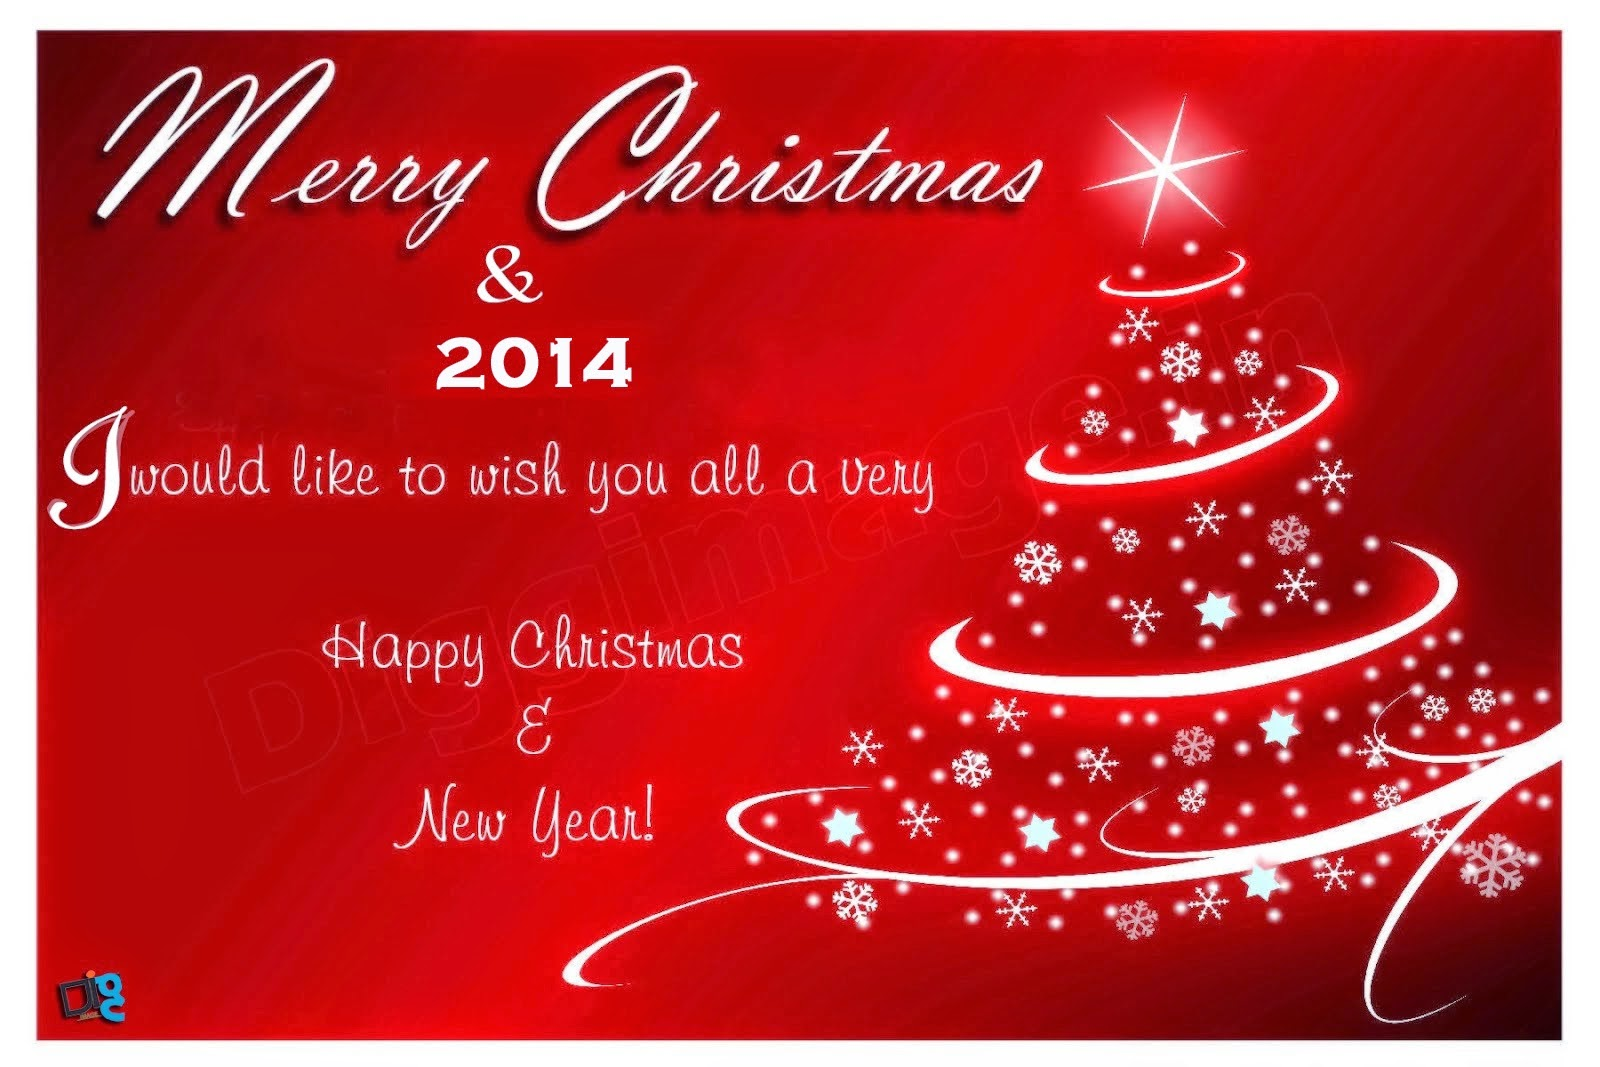 Christmas messages 2014 merry christmas wishes with quotes and sayings hd wallpapers for facebook kristyandbryce Gallery